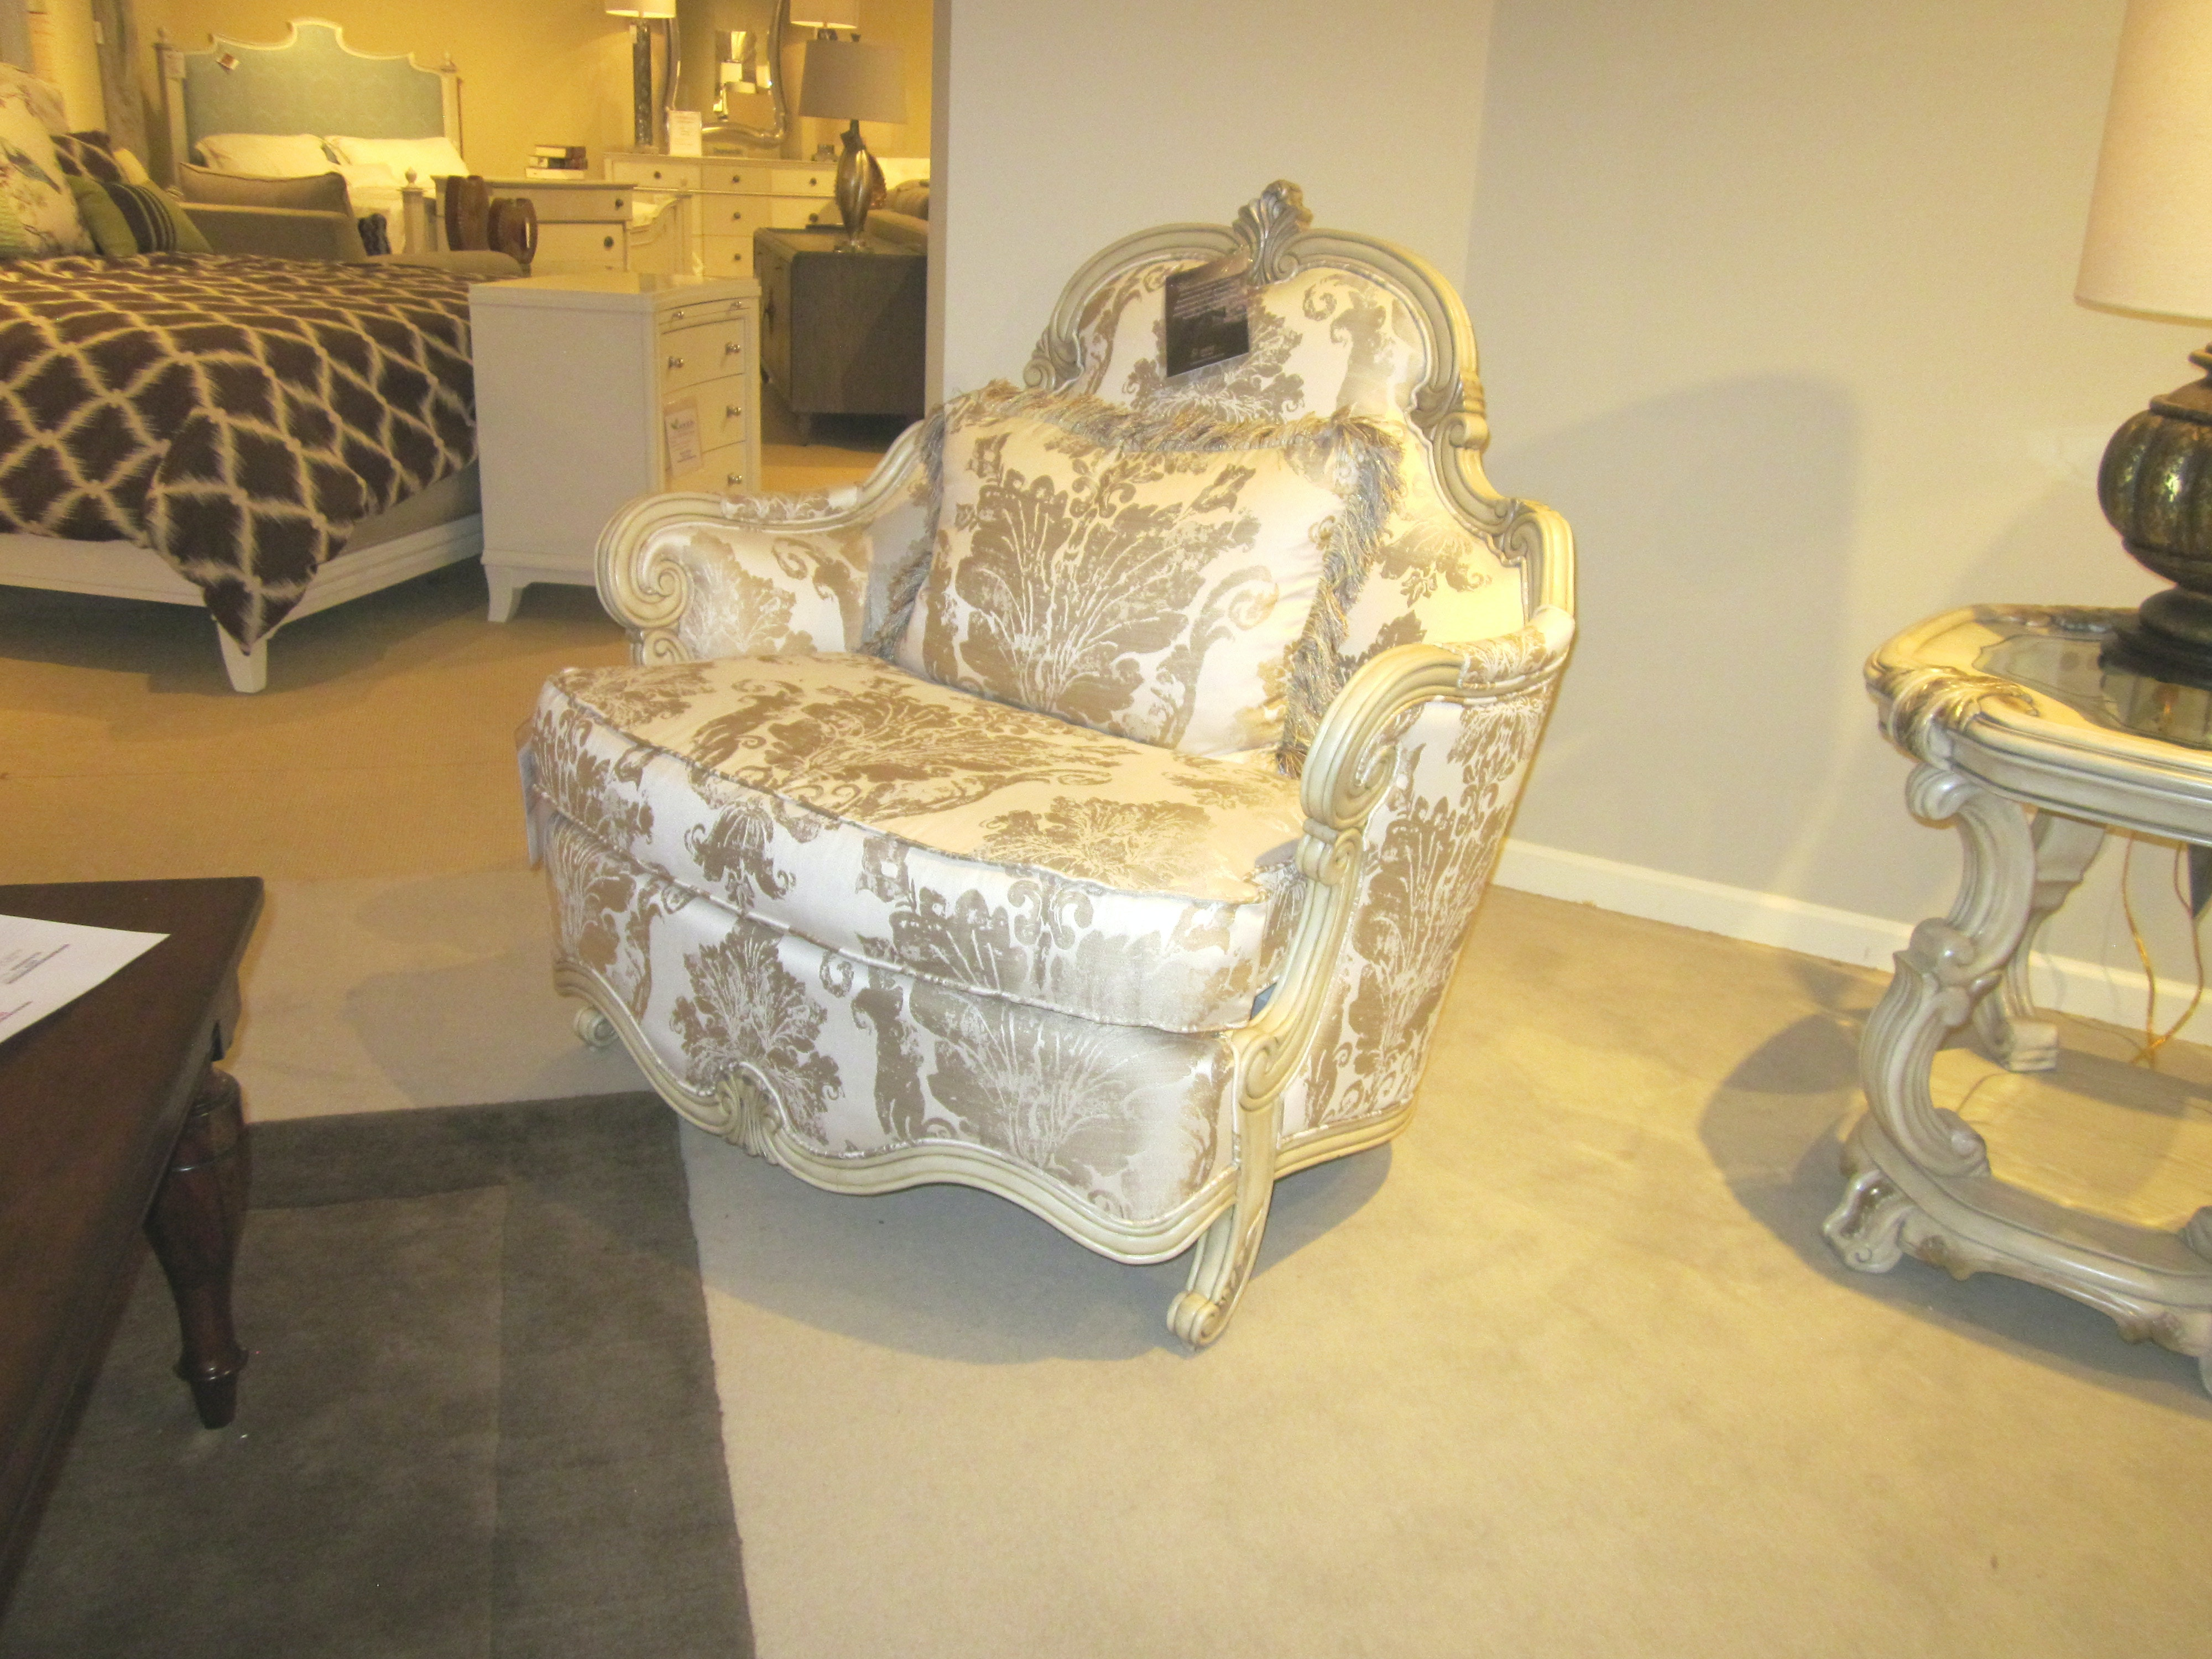 Charmant Goodu0027s Furniture Outlet Plantine De Royale Chair And A Half By Aico  Furniture 09838 CHPGN